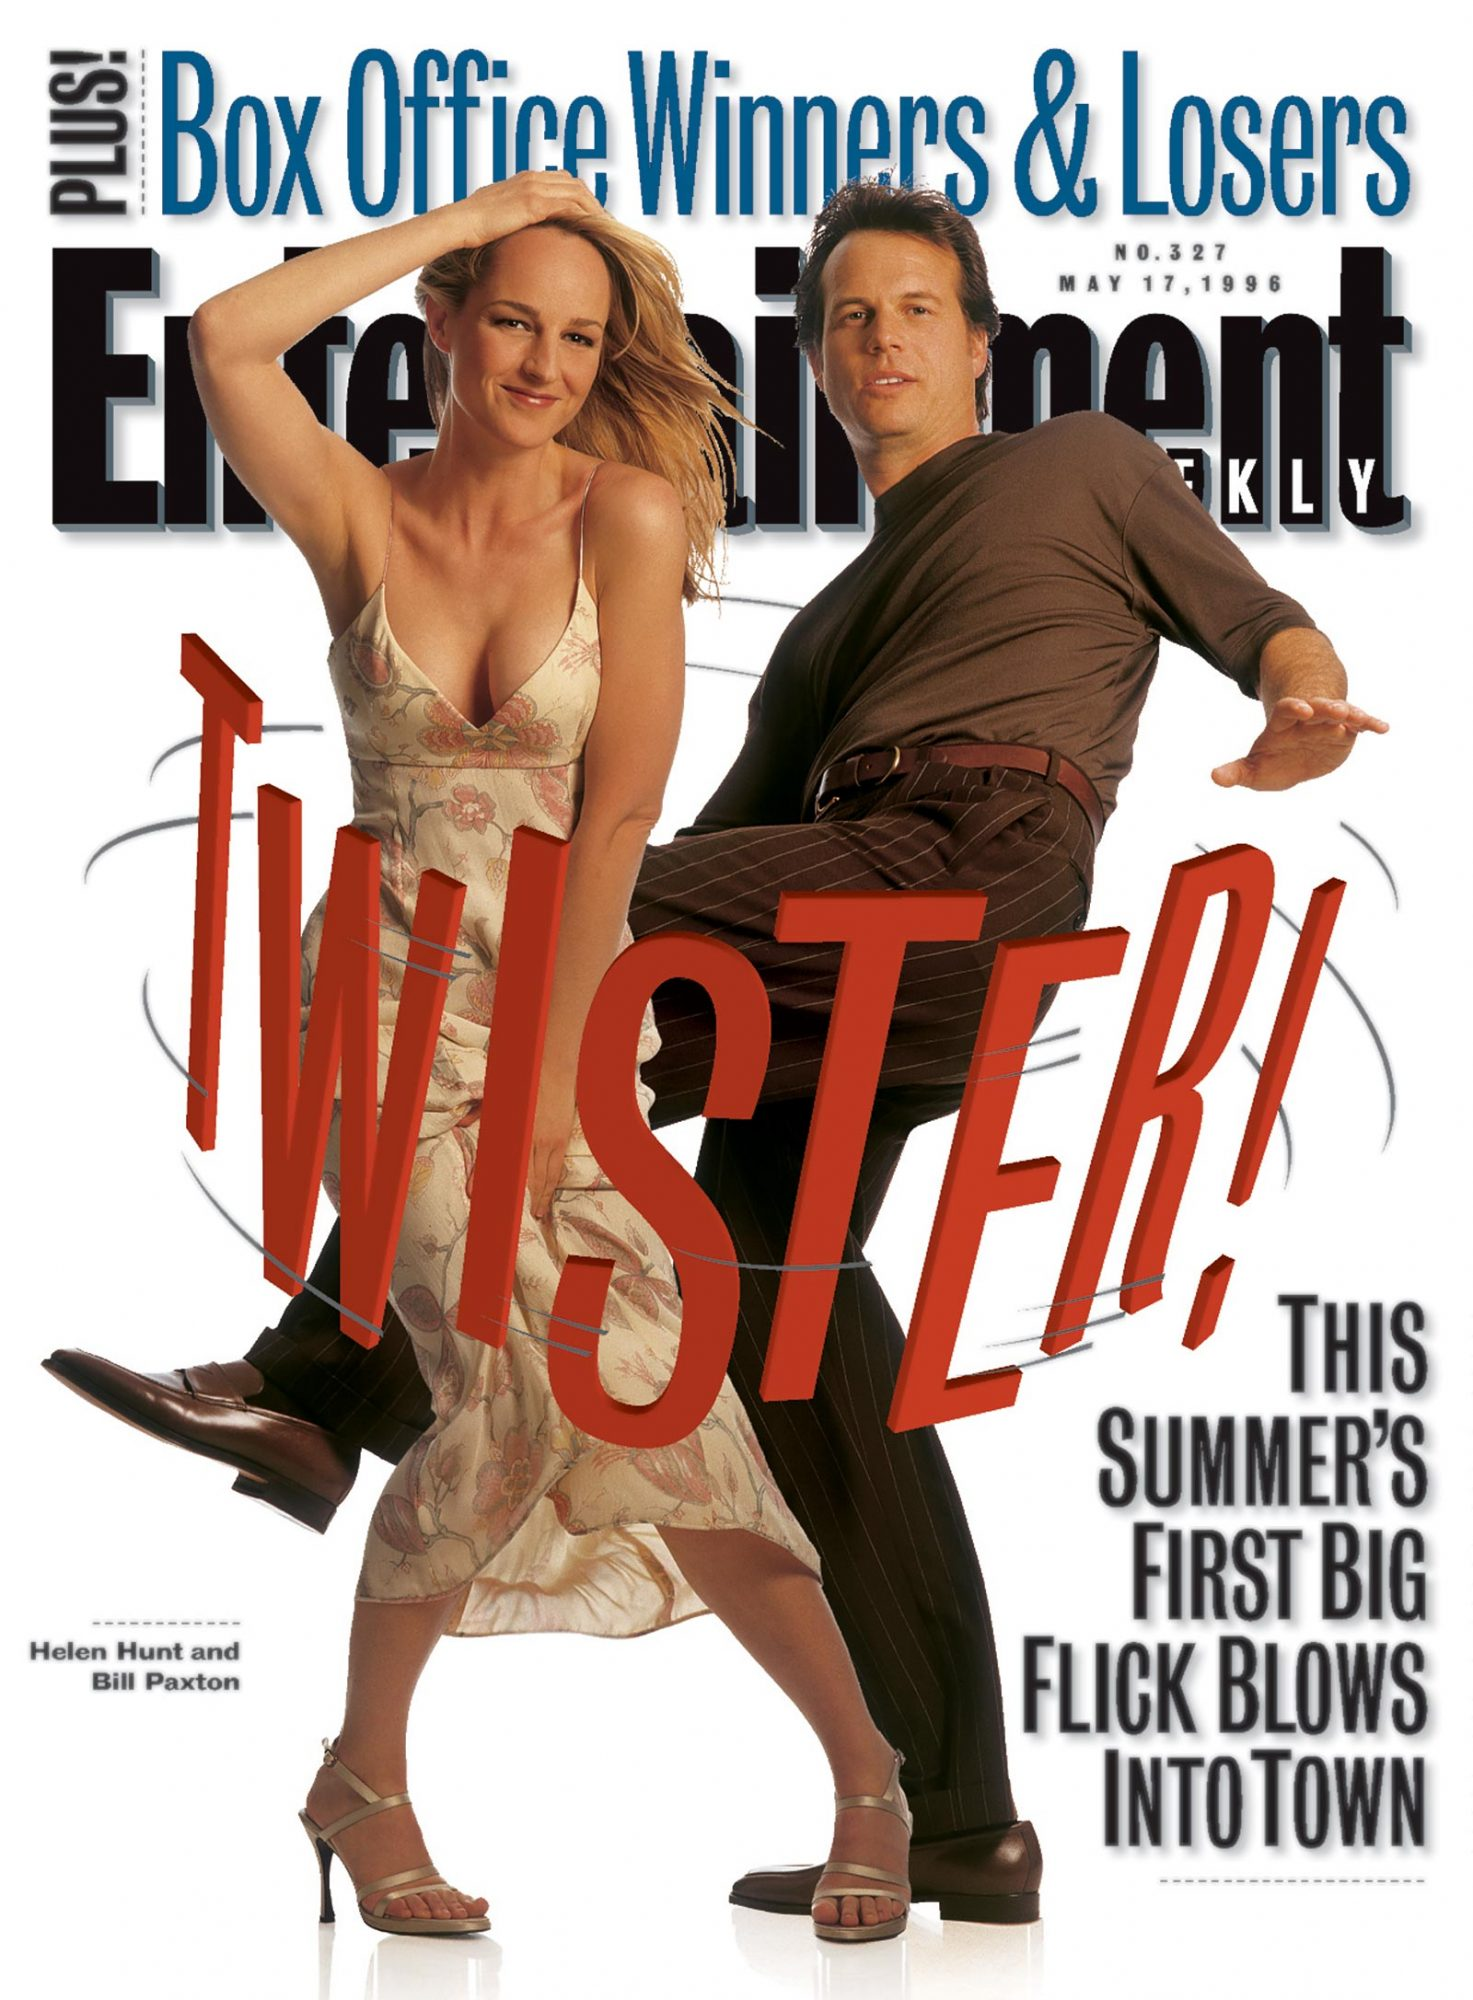 Entertainment WeeklyHelen HuntTwisterMay 17, 1996#327